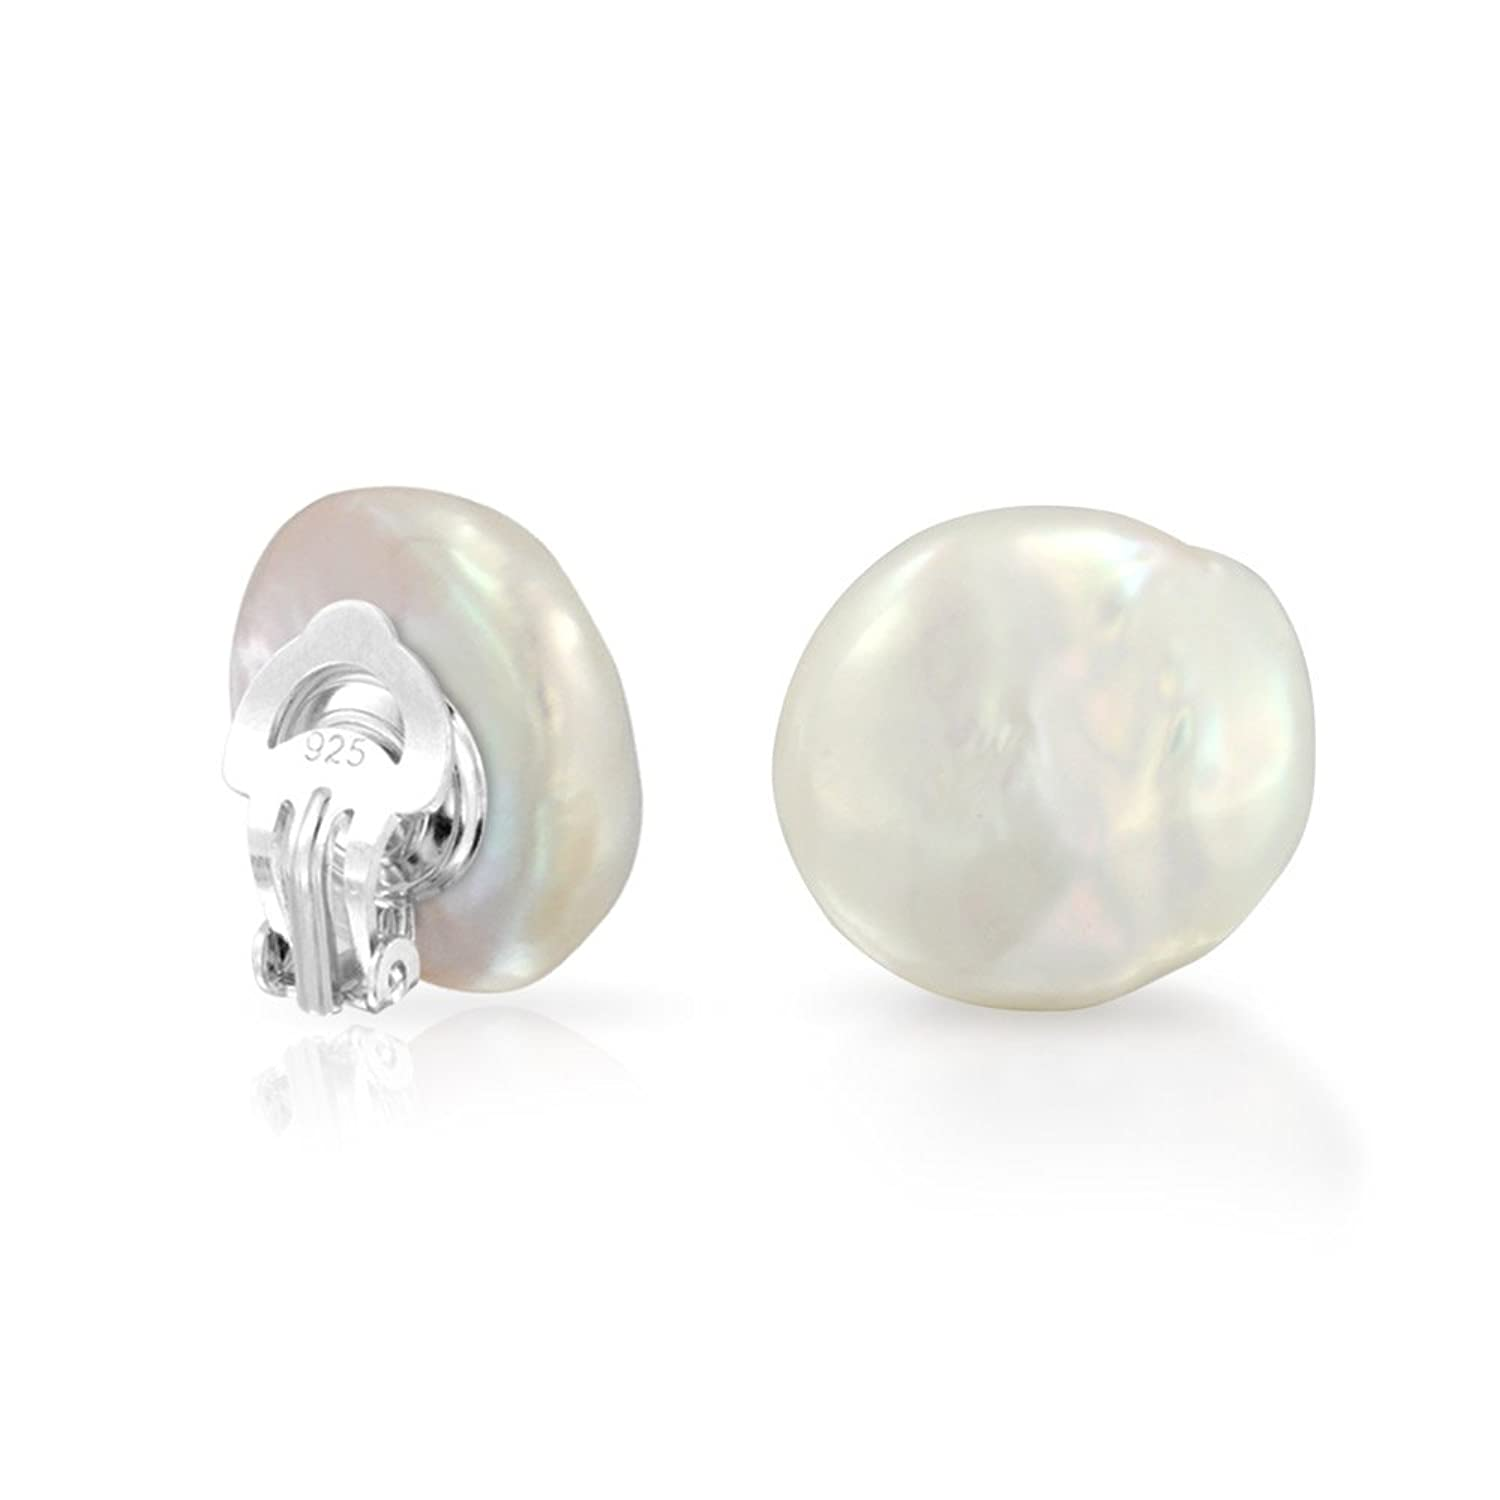 Bling Jewelry Freshwater Cultured Pearl Coin Pushback Bridal Stud earrings 925 Sterling Silver 14mm RwSofHjK